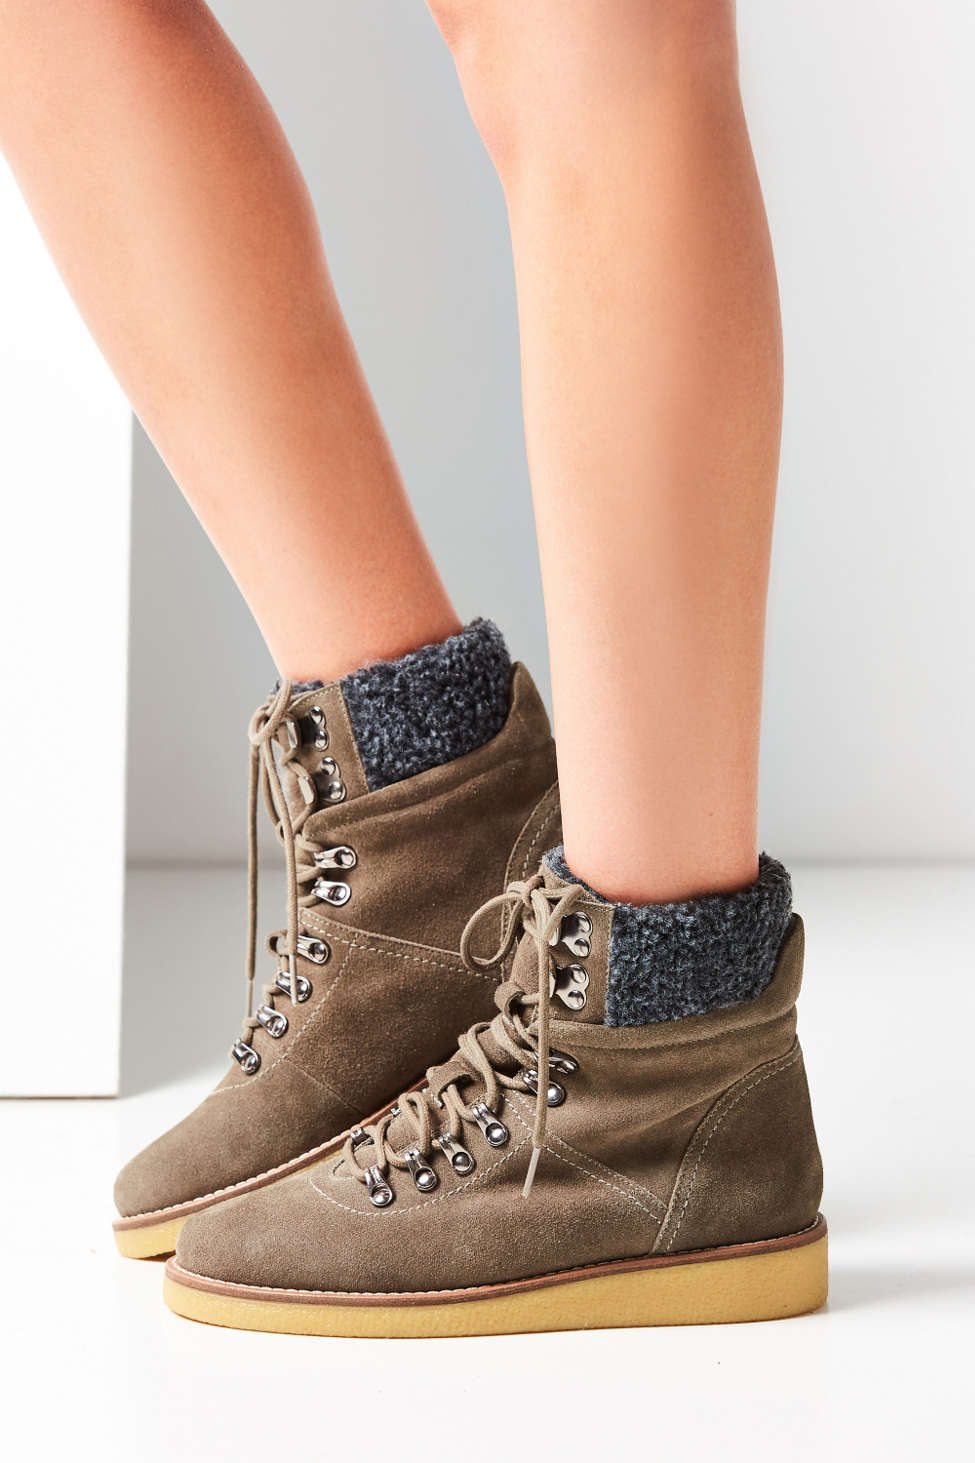 http://www.urbanoutfitters.com/urban/catalog/productdetail.jsp?id=40196990&category=W_SHOES_BOOTS&color=006